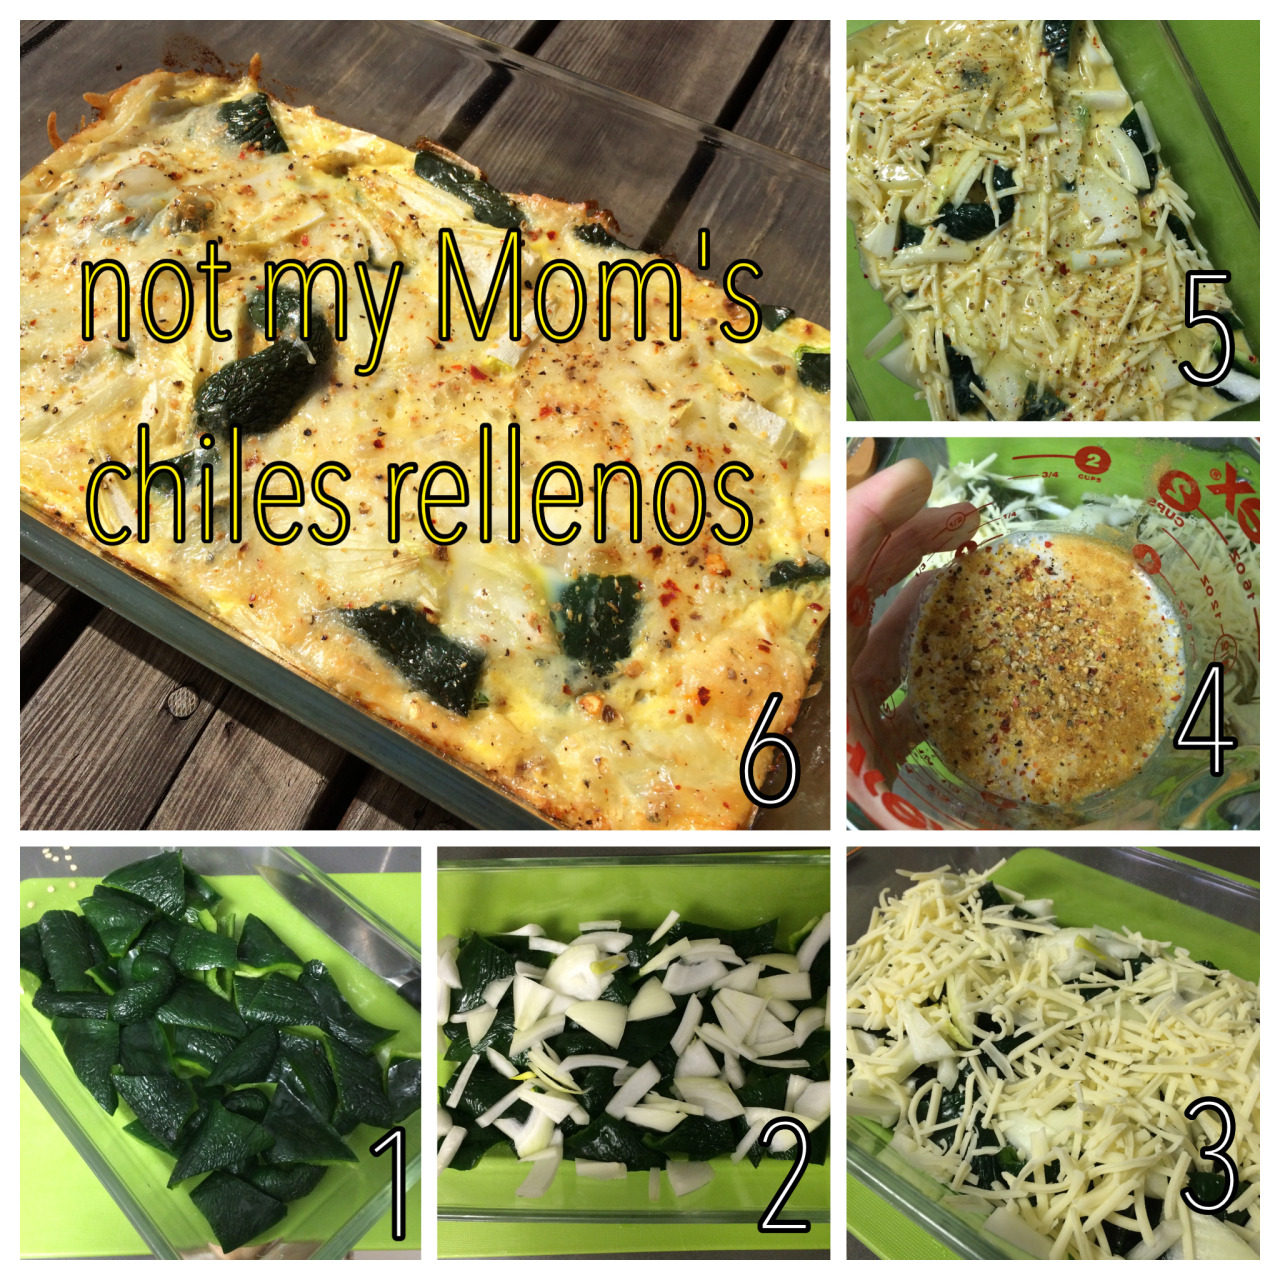 "I'm all about saving time these days. These are a lazy version of chiles rellenos, but nonetheless, equally delicious. Enjoy!   Ingredients:    2 whole, peeled, seeded green poblanos   ½ cup cheddar cheese, grated   3 whole extra large eggs   2/3 cup of 2% milk   ½ medium  onion, sliced   ½ teaspoon of  Everyday Seasoning   (Trader Joe's product with sea salt, mustard seeds, black peppercorns, coriander, onion, garlic, paprika)    ¼ teaspoon Cayenne pepper (optional)    Instructions:   Preheat oven to 325 degrees.   Cut chiles in 2-3"" pieces. Add a single layer of chilies on the bottom of a 9 x 13-inch baking dish.   Top chiles with the sliced onions.  Add grated cheese.  Mix together eggs, milk, and seasoning. Pour egg mixture all over the top.  Bake for 40-45 minutes, or until slightly golden.  Voila! Cut into squares and serve with corn tortillas, side salad, or on it's own. This meal is great for breakfast, lunch, or dinner!      Recipe slightly tweaked from  The Pioneer Woman."